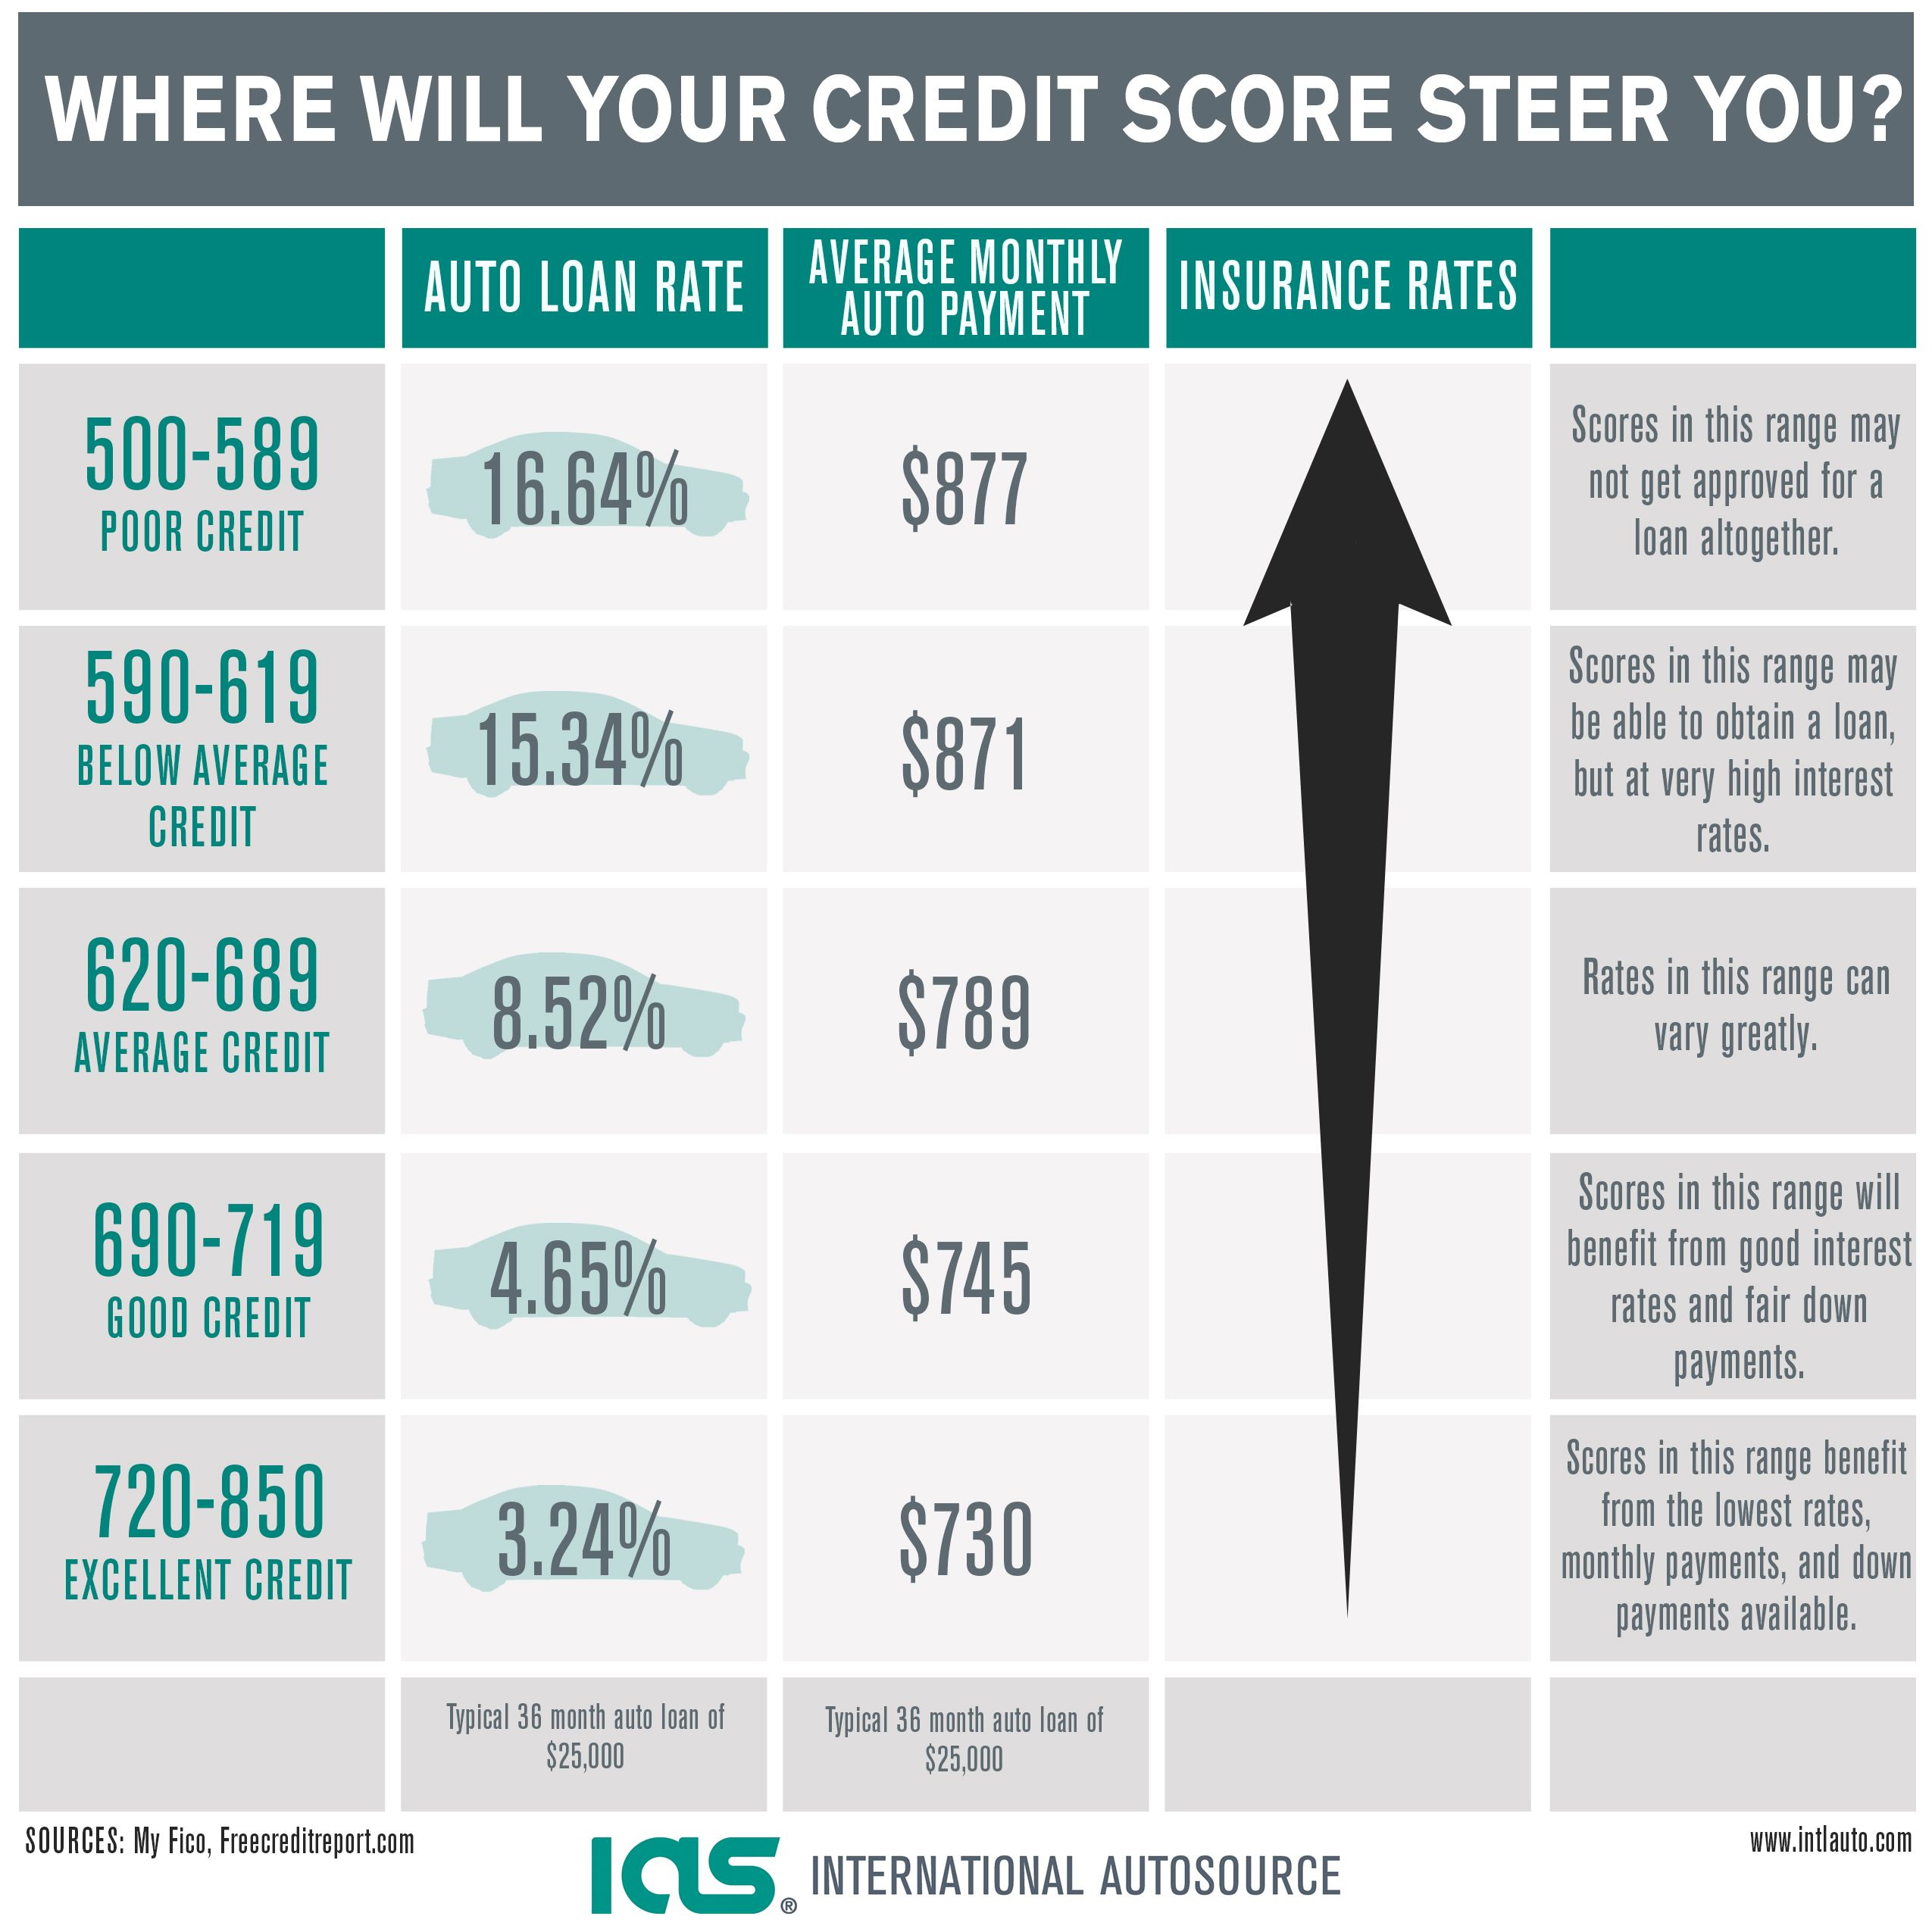 Only CA and NH and Hawaii Don't use CREDIT scores to